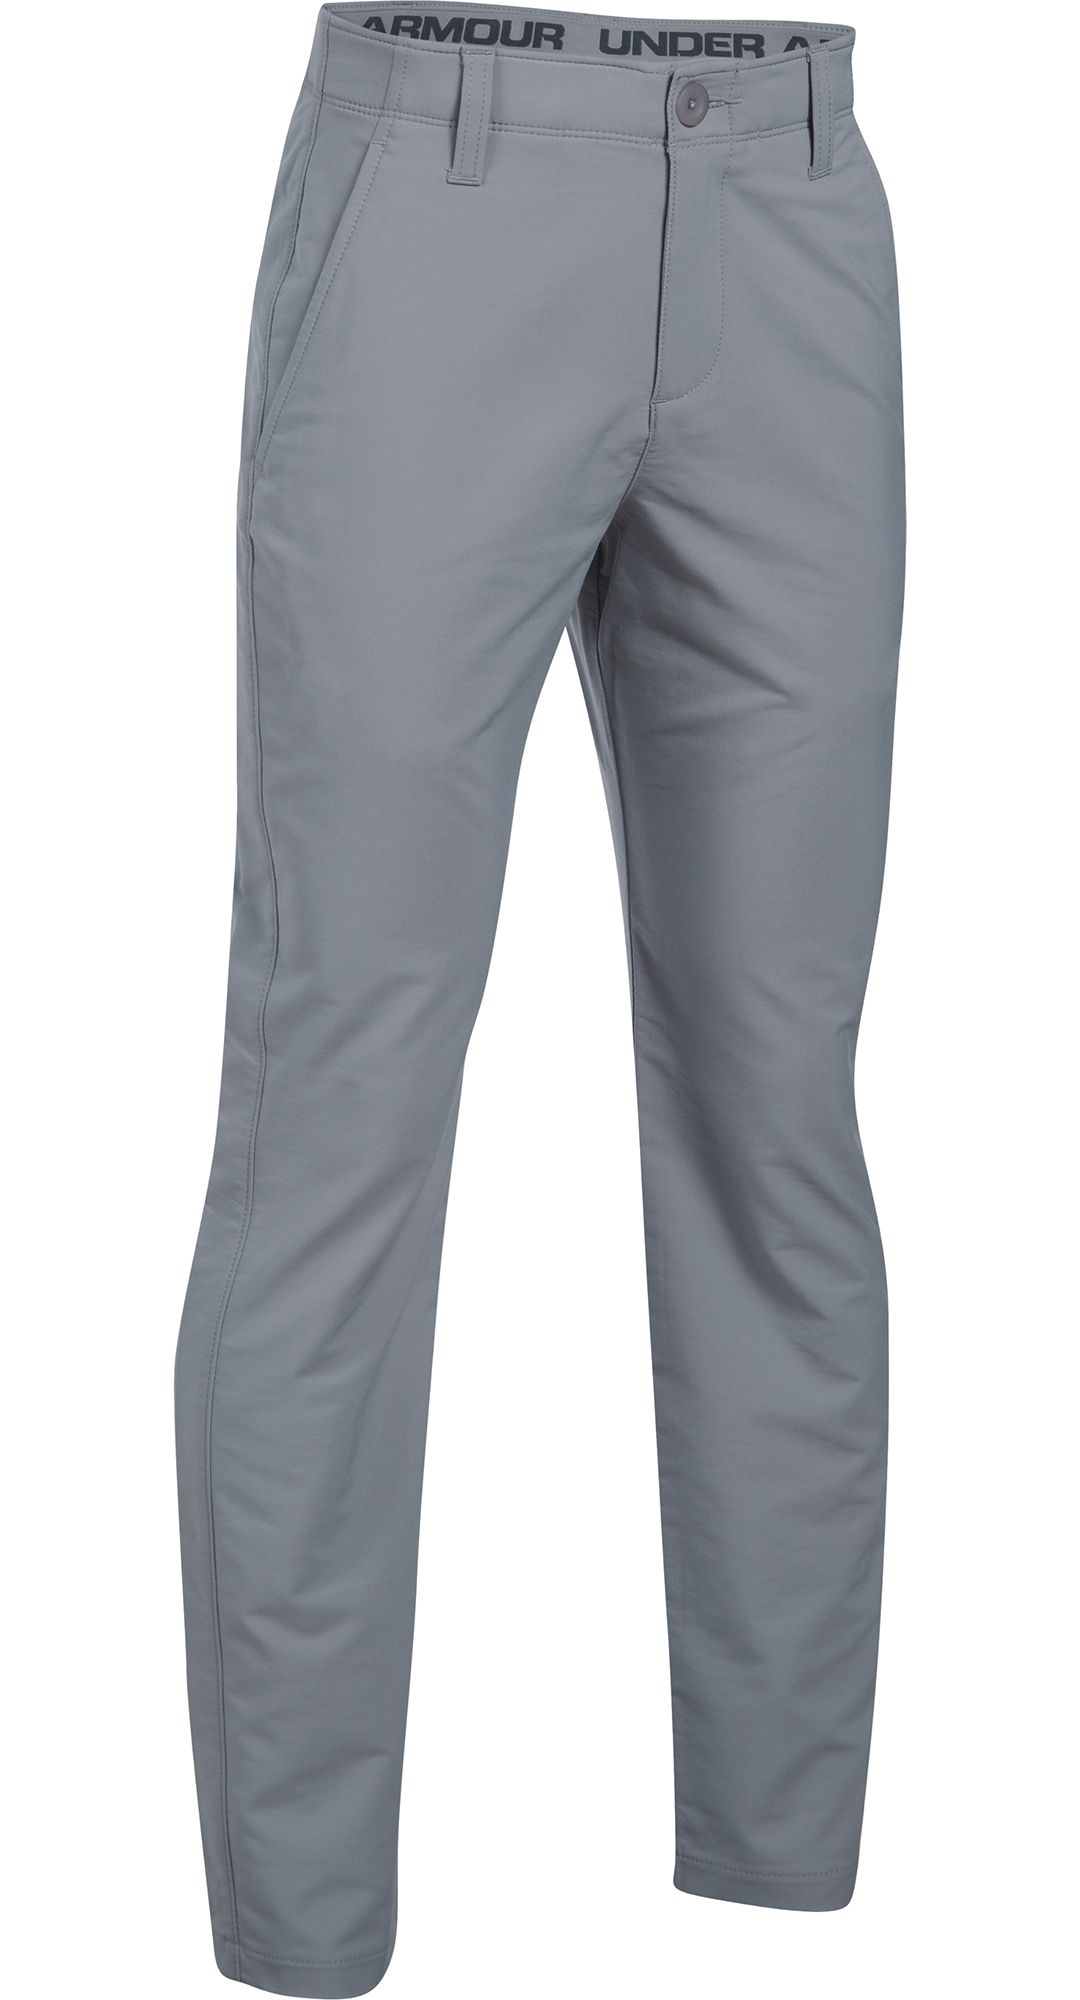 7169e90a2 Under Armour Boys' Match Play Golf Pants   DICK'S Sporting Goods